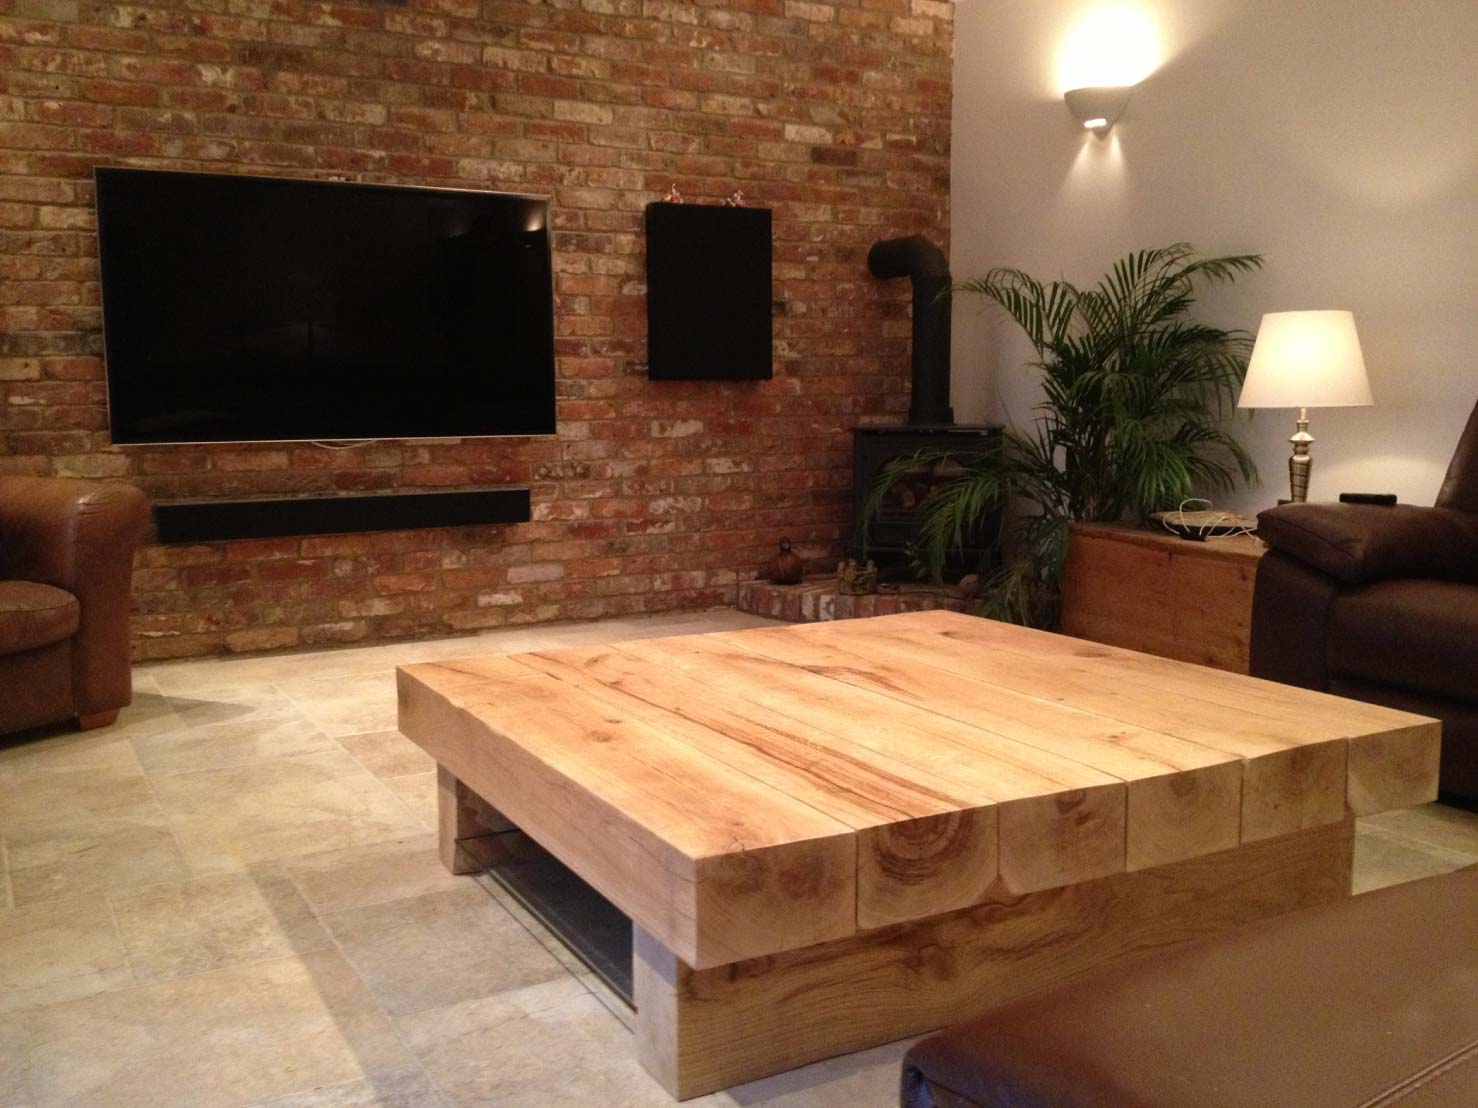 square-oak-coffee-table-from-abacus-tables-arabica-classic-style-1.3m-project-67